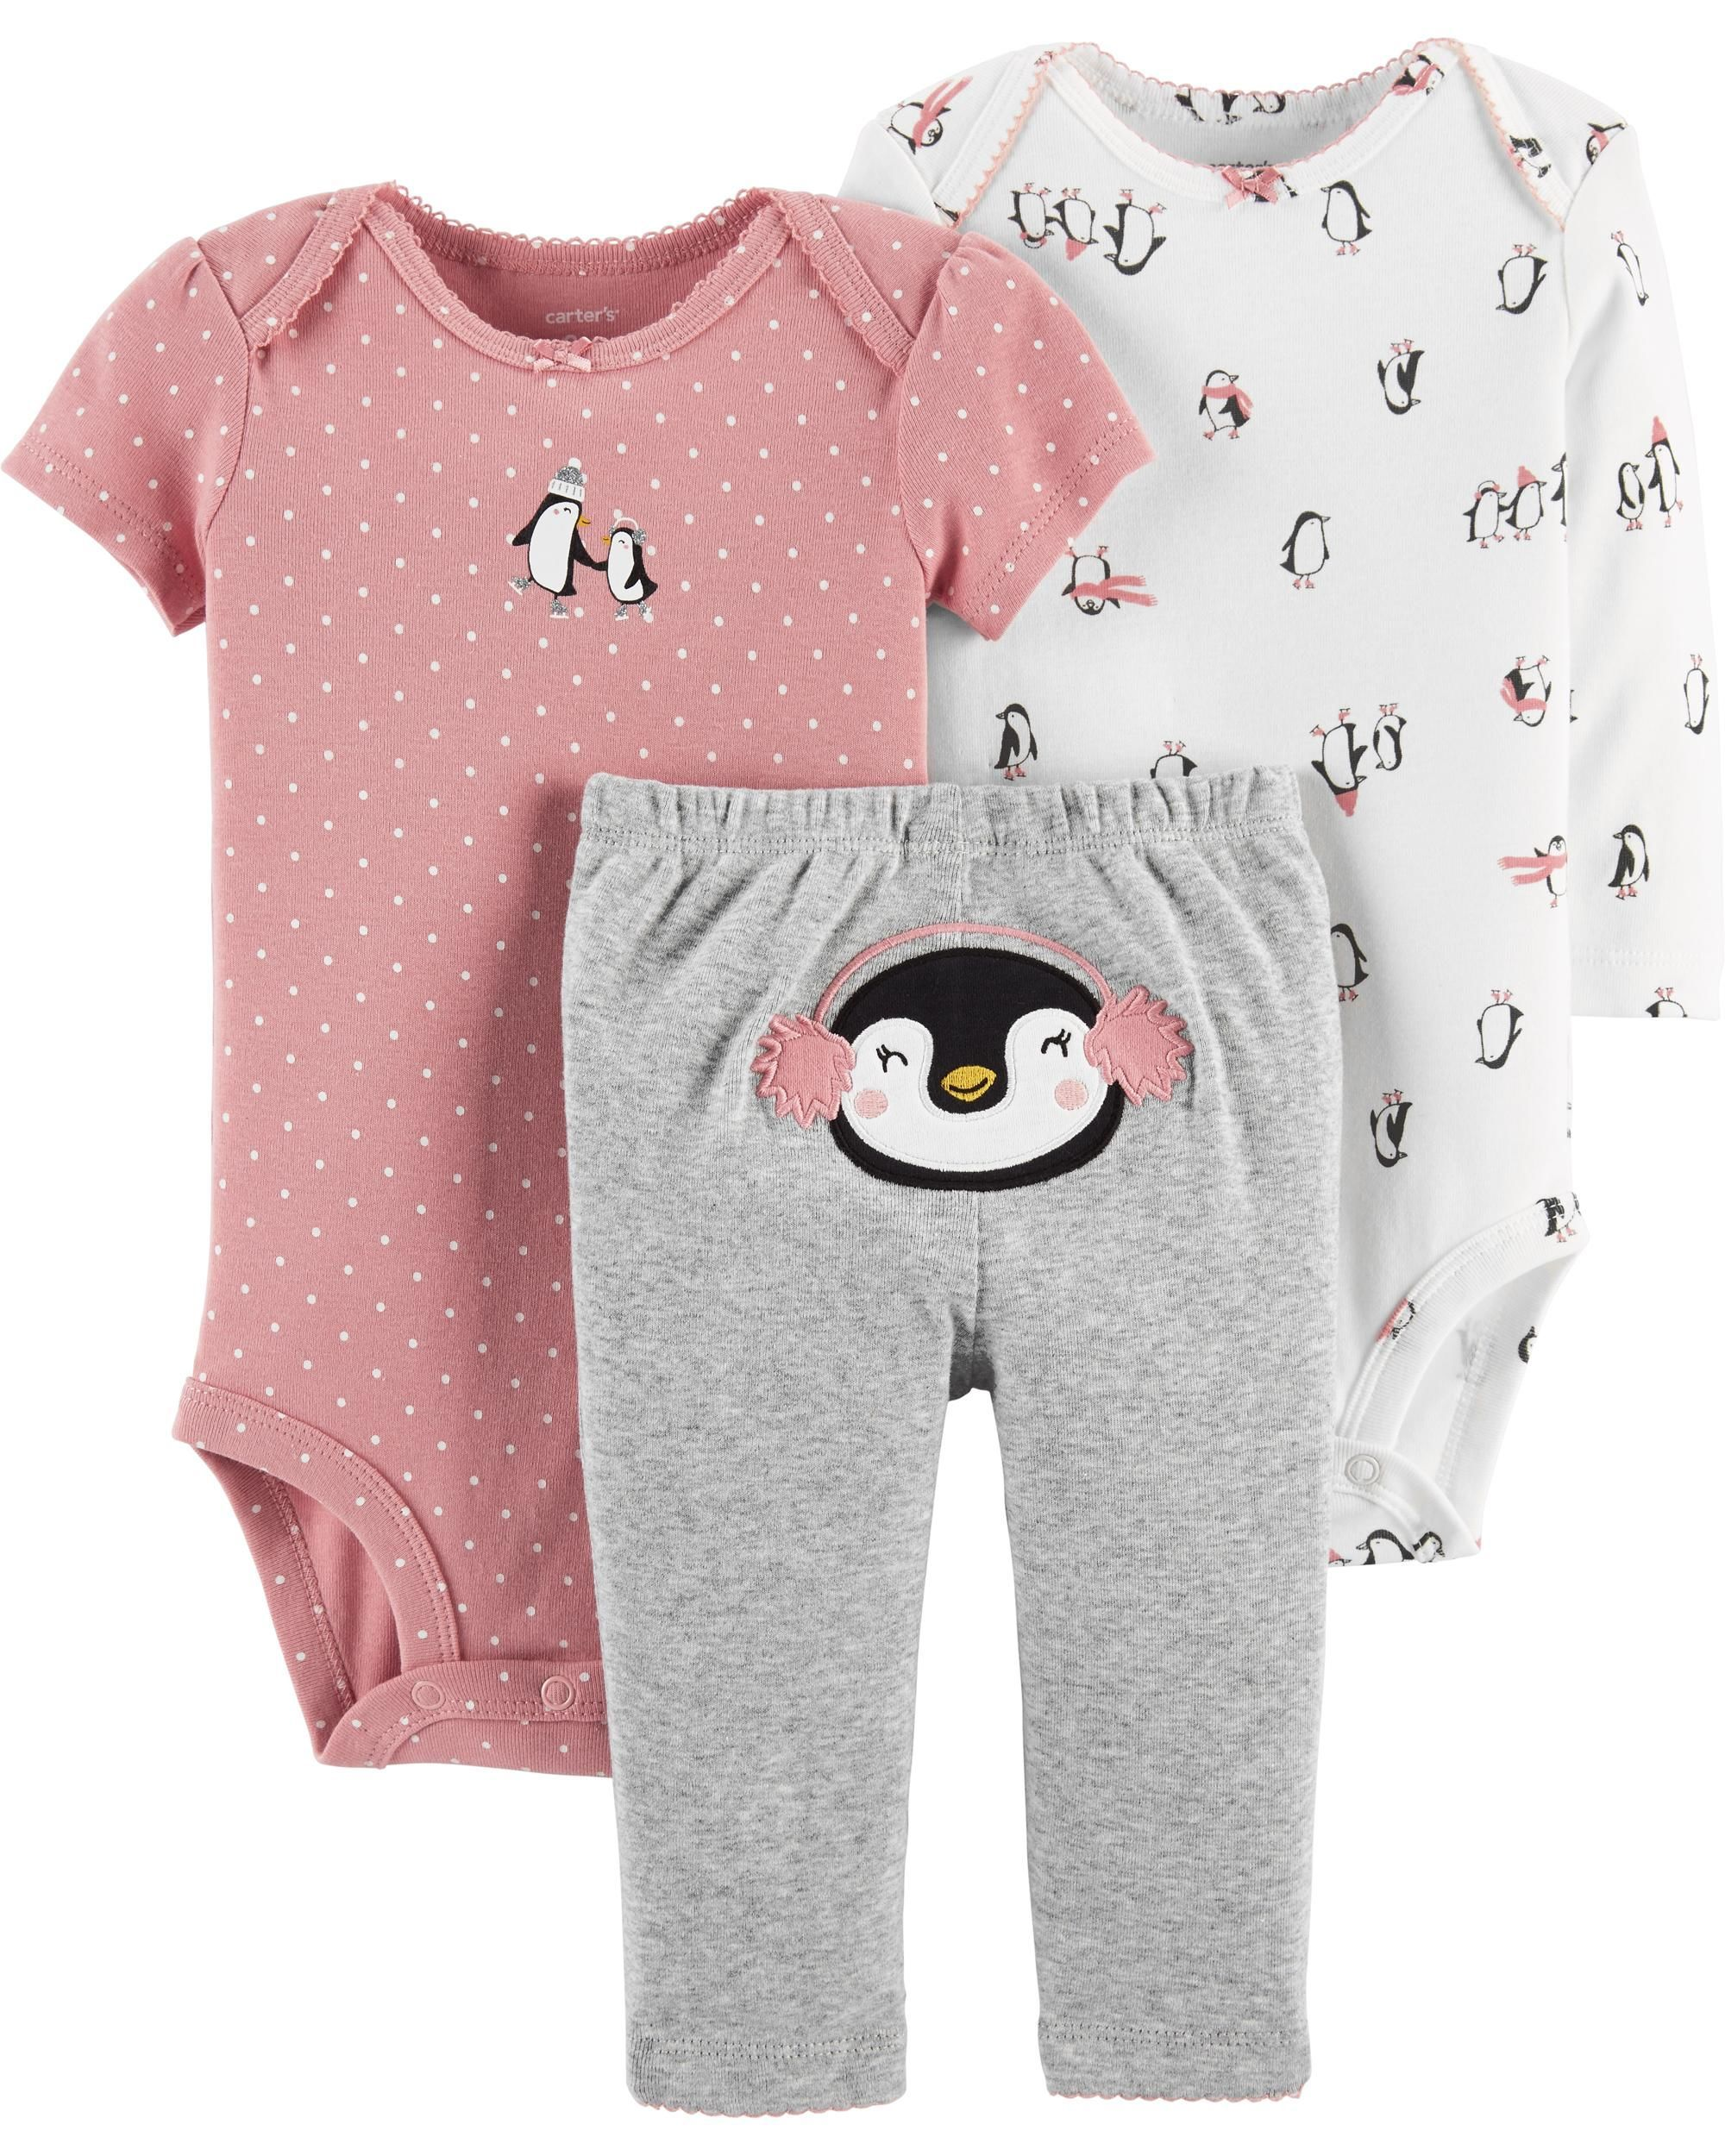 7bdabebde2a7 3-Piece Little Character Set   Babies❤   Carters baby girl ...